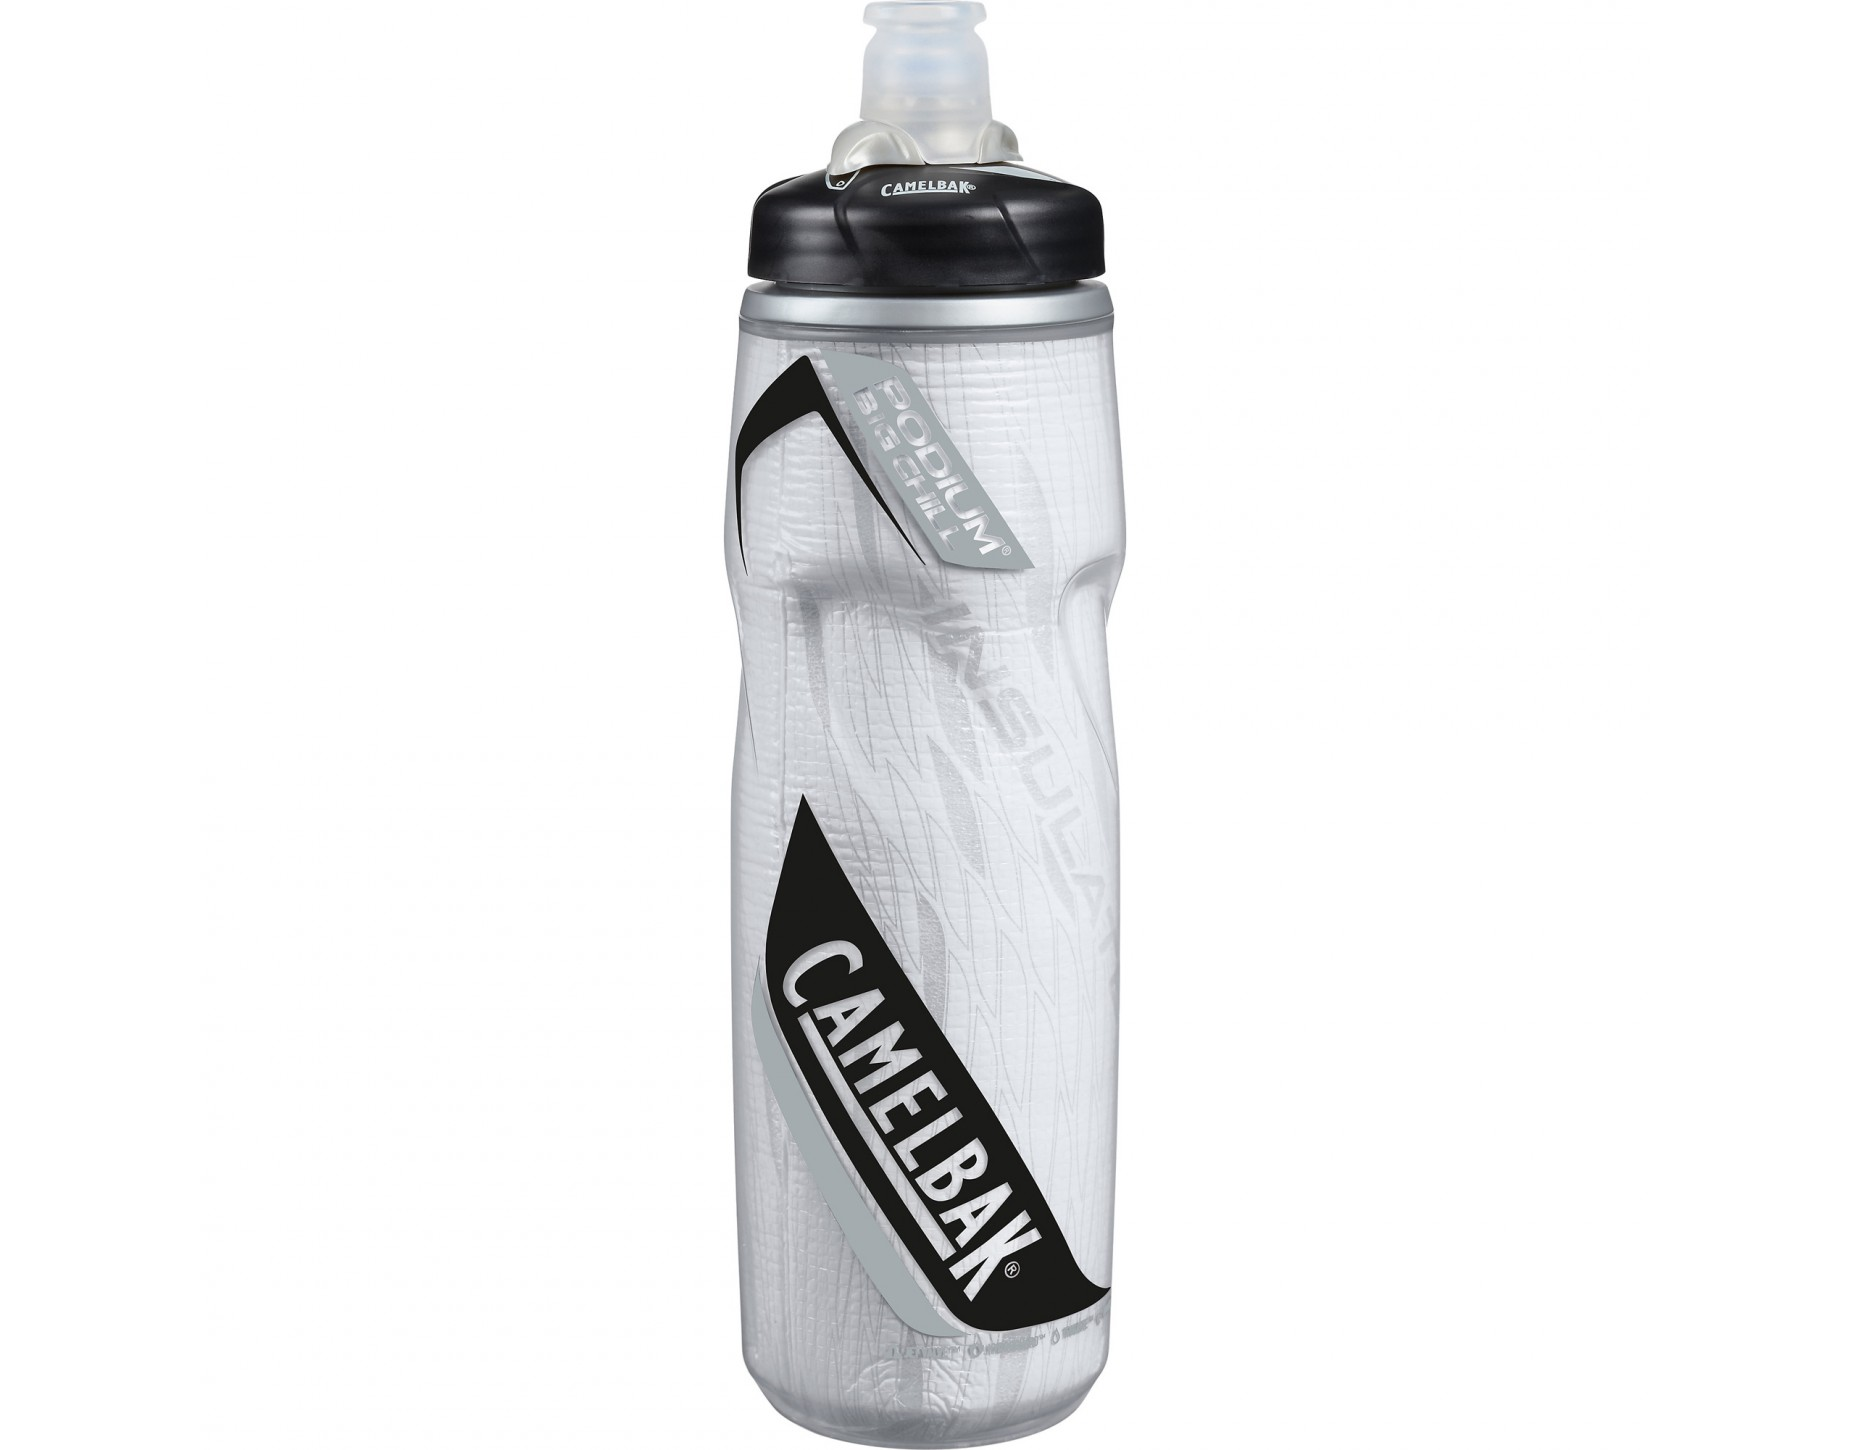 camelbak podium big chill trinkflasche 750 ml g nstig kaufen rose bikes. Black Bedroom Furniture Sets. Home Design Ideas